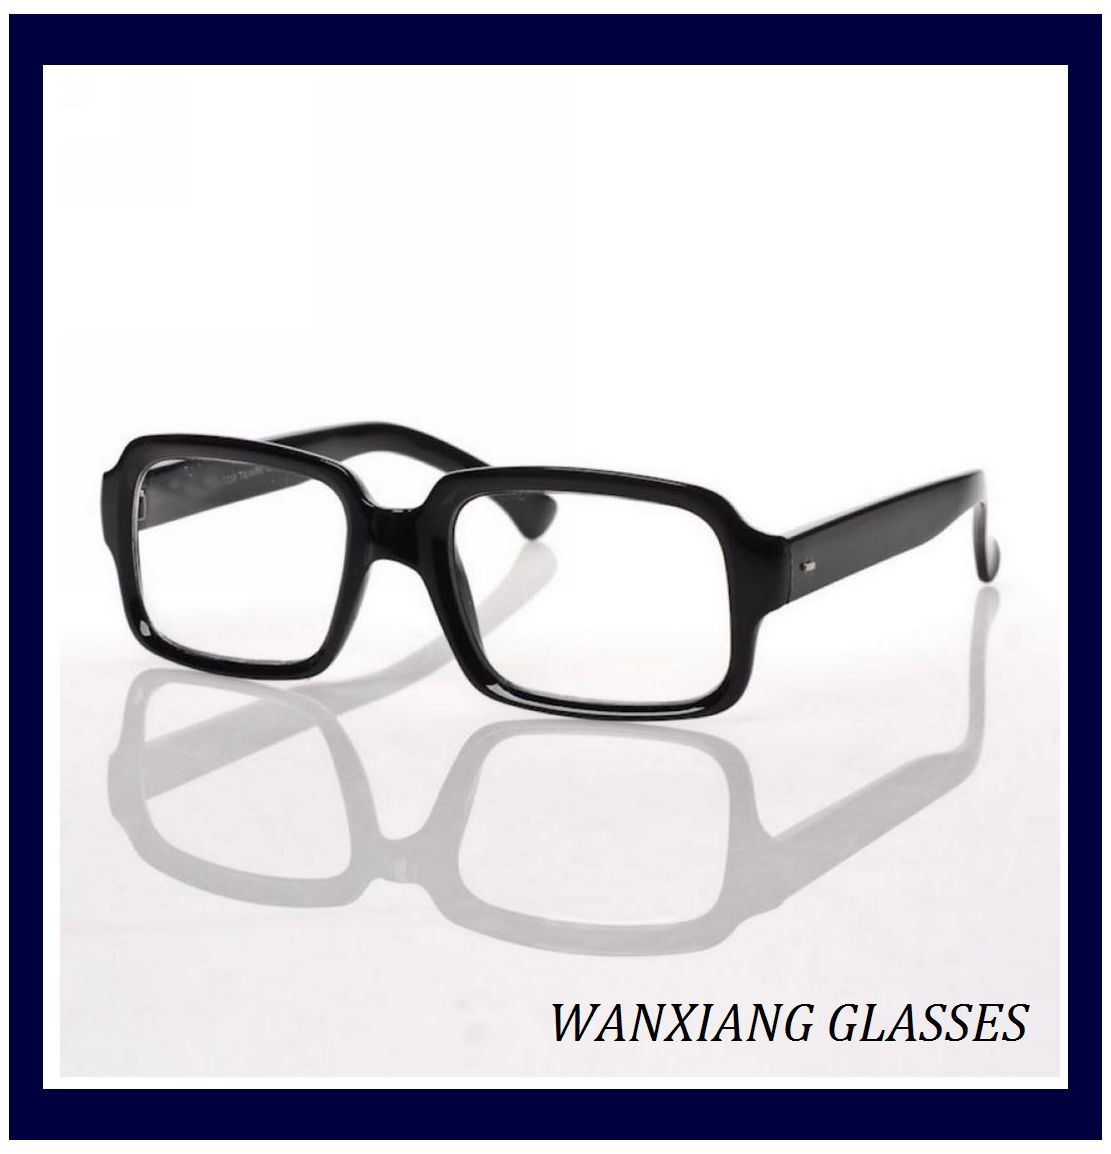 Glasses Frames - Imtopro International Company - page 1.